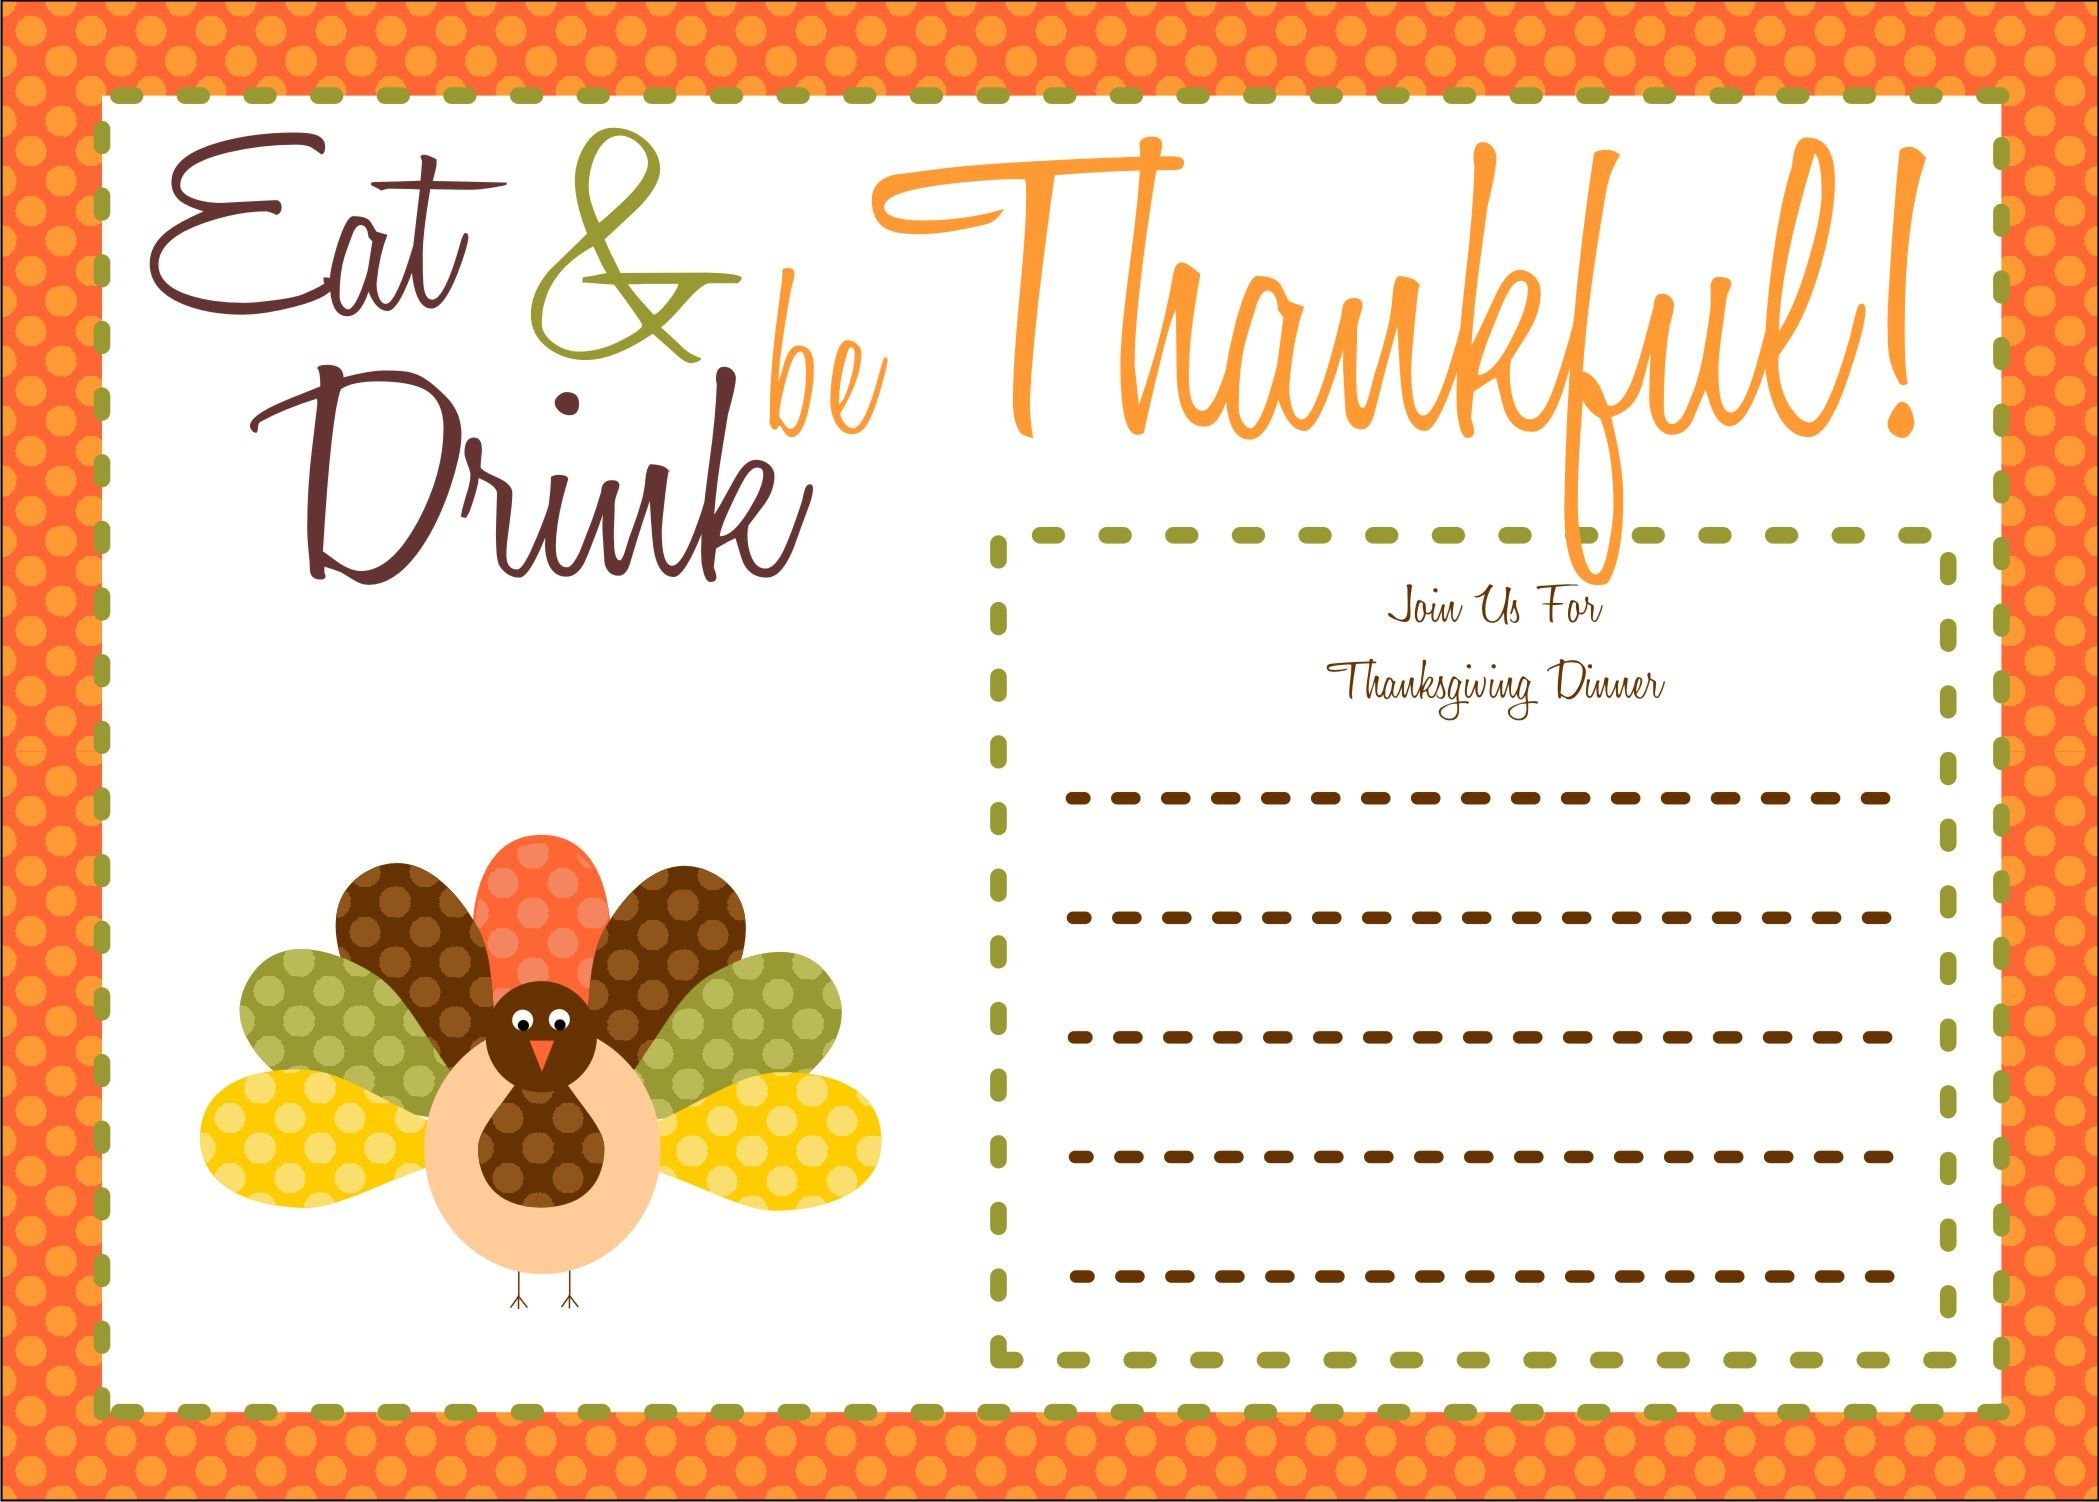 Free Thanksgiving Printables From The Party Bakery   Free Printables - Free Printable Thanksgiving Invitations